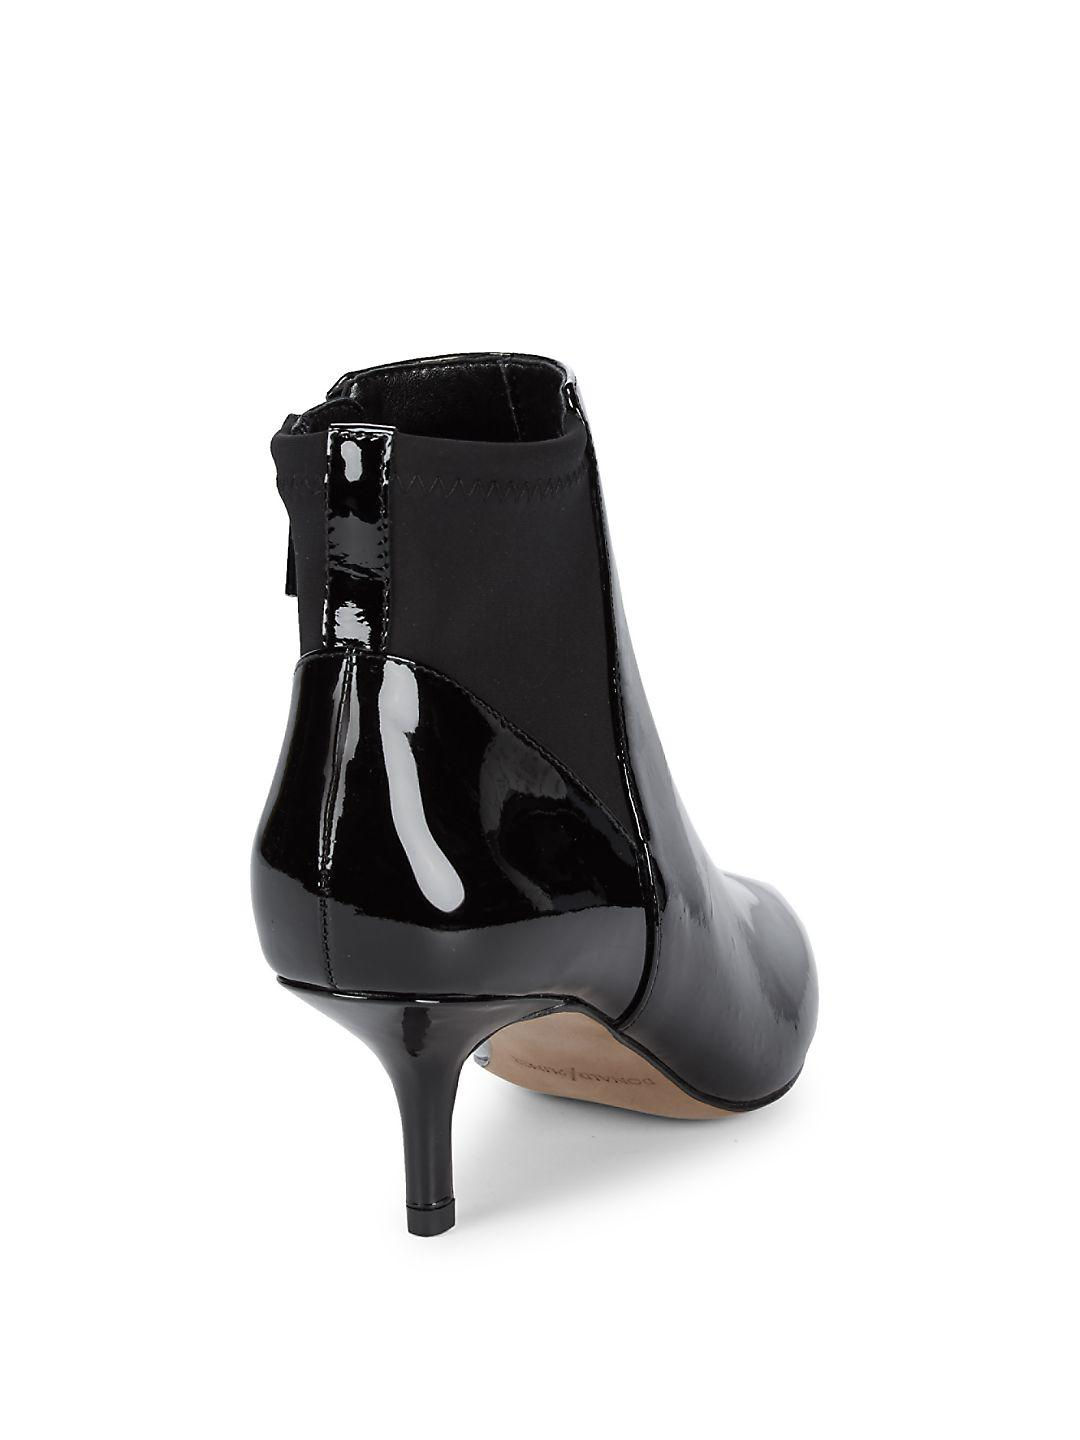 Donald J Pliner Synthetic Patent Point Toe Booties in Black